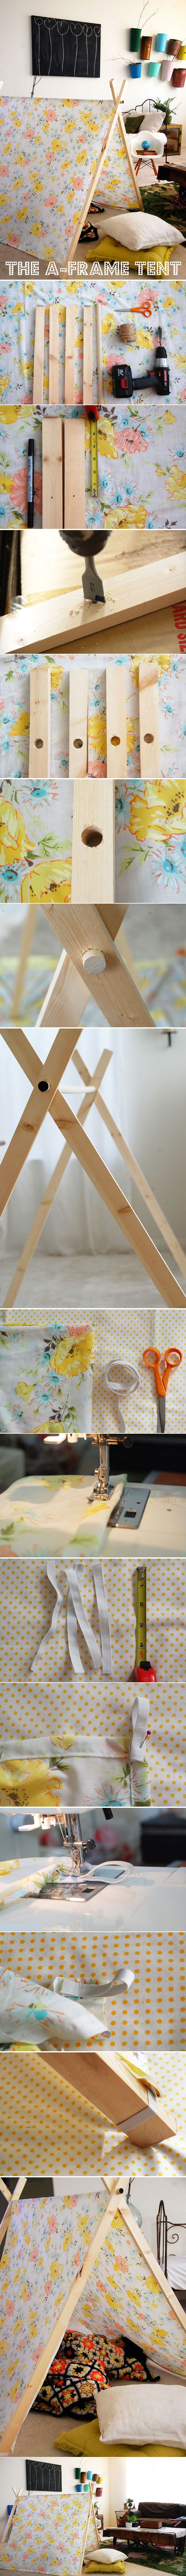 @Nicole Novembrino Mattison for the boys!  DIY Tutorial: A-Frame Tent